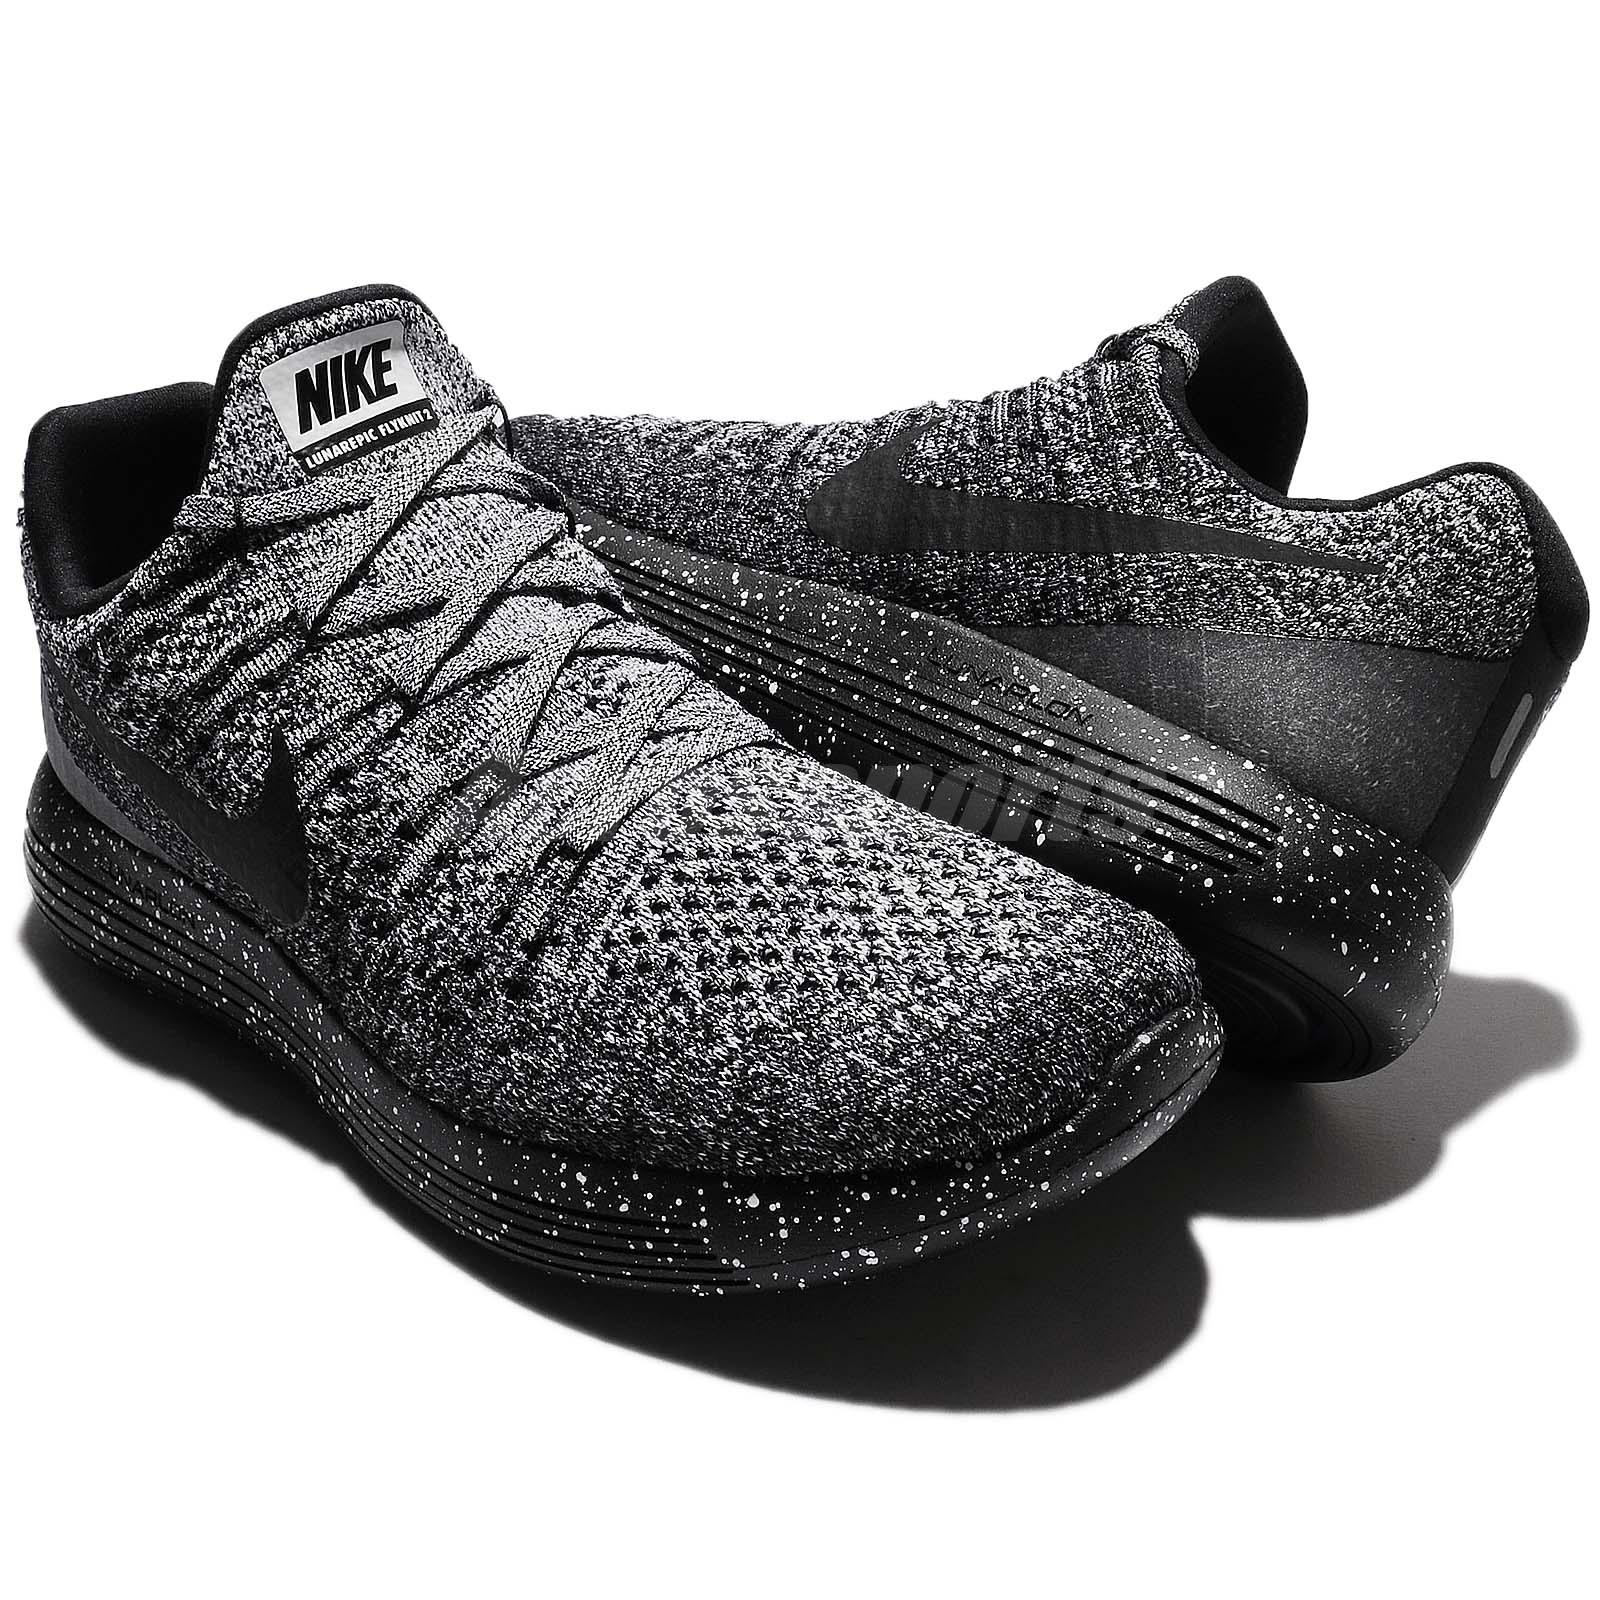 Nike Lunarepic Low Flyknit 2 II Black White Men Running Shoe ...